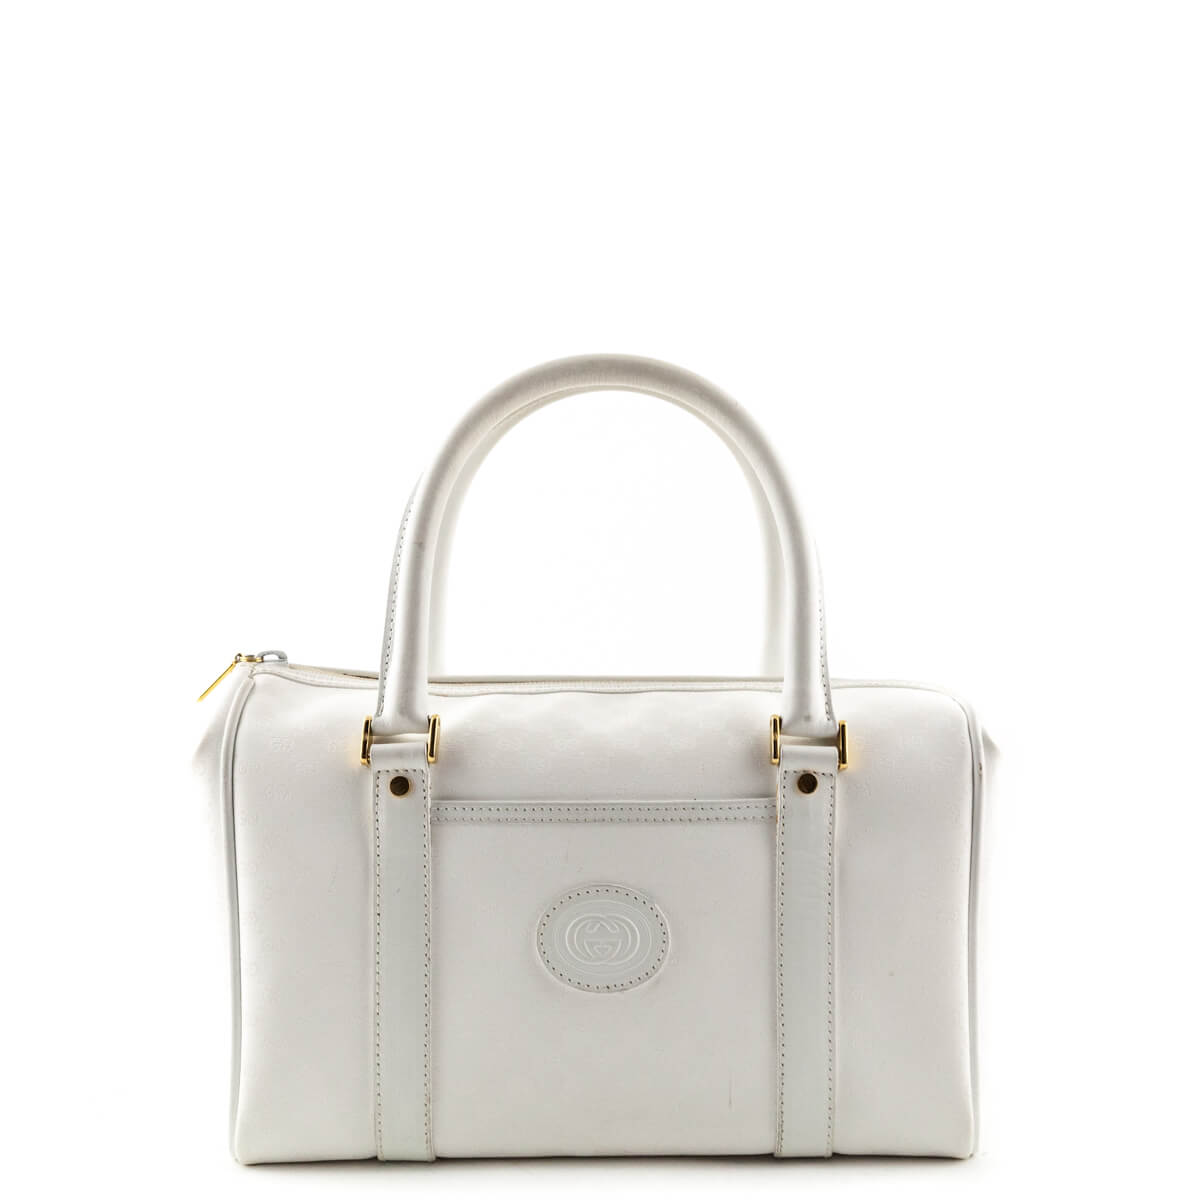 1580936a6c5 Gucci White Coated Canvas Vintage Boston Bag - LOVE that BAG - Preowned  Authentic Designer Handbags ...